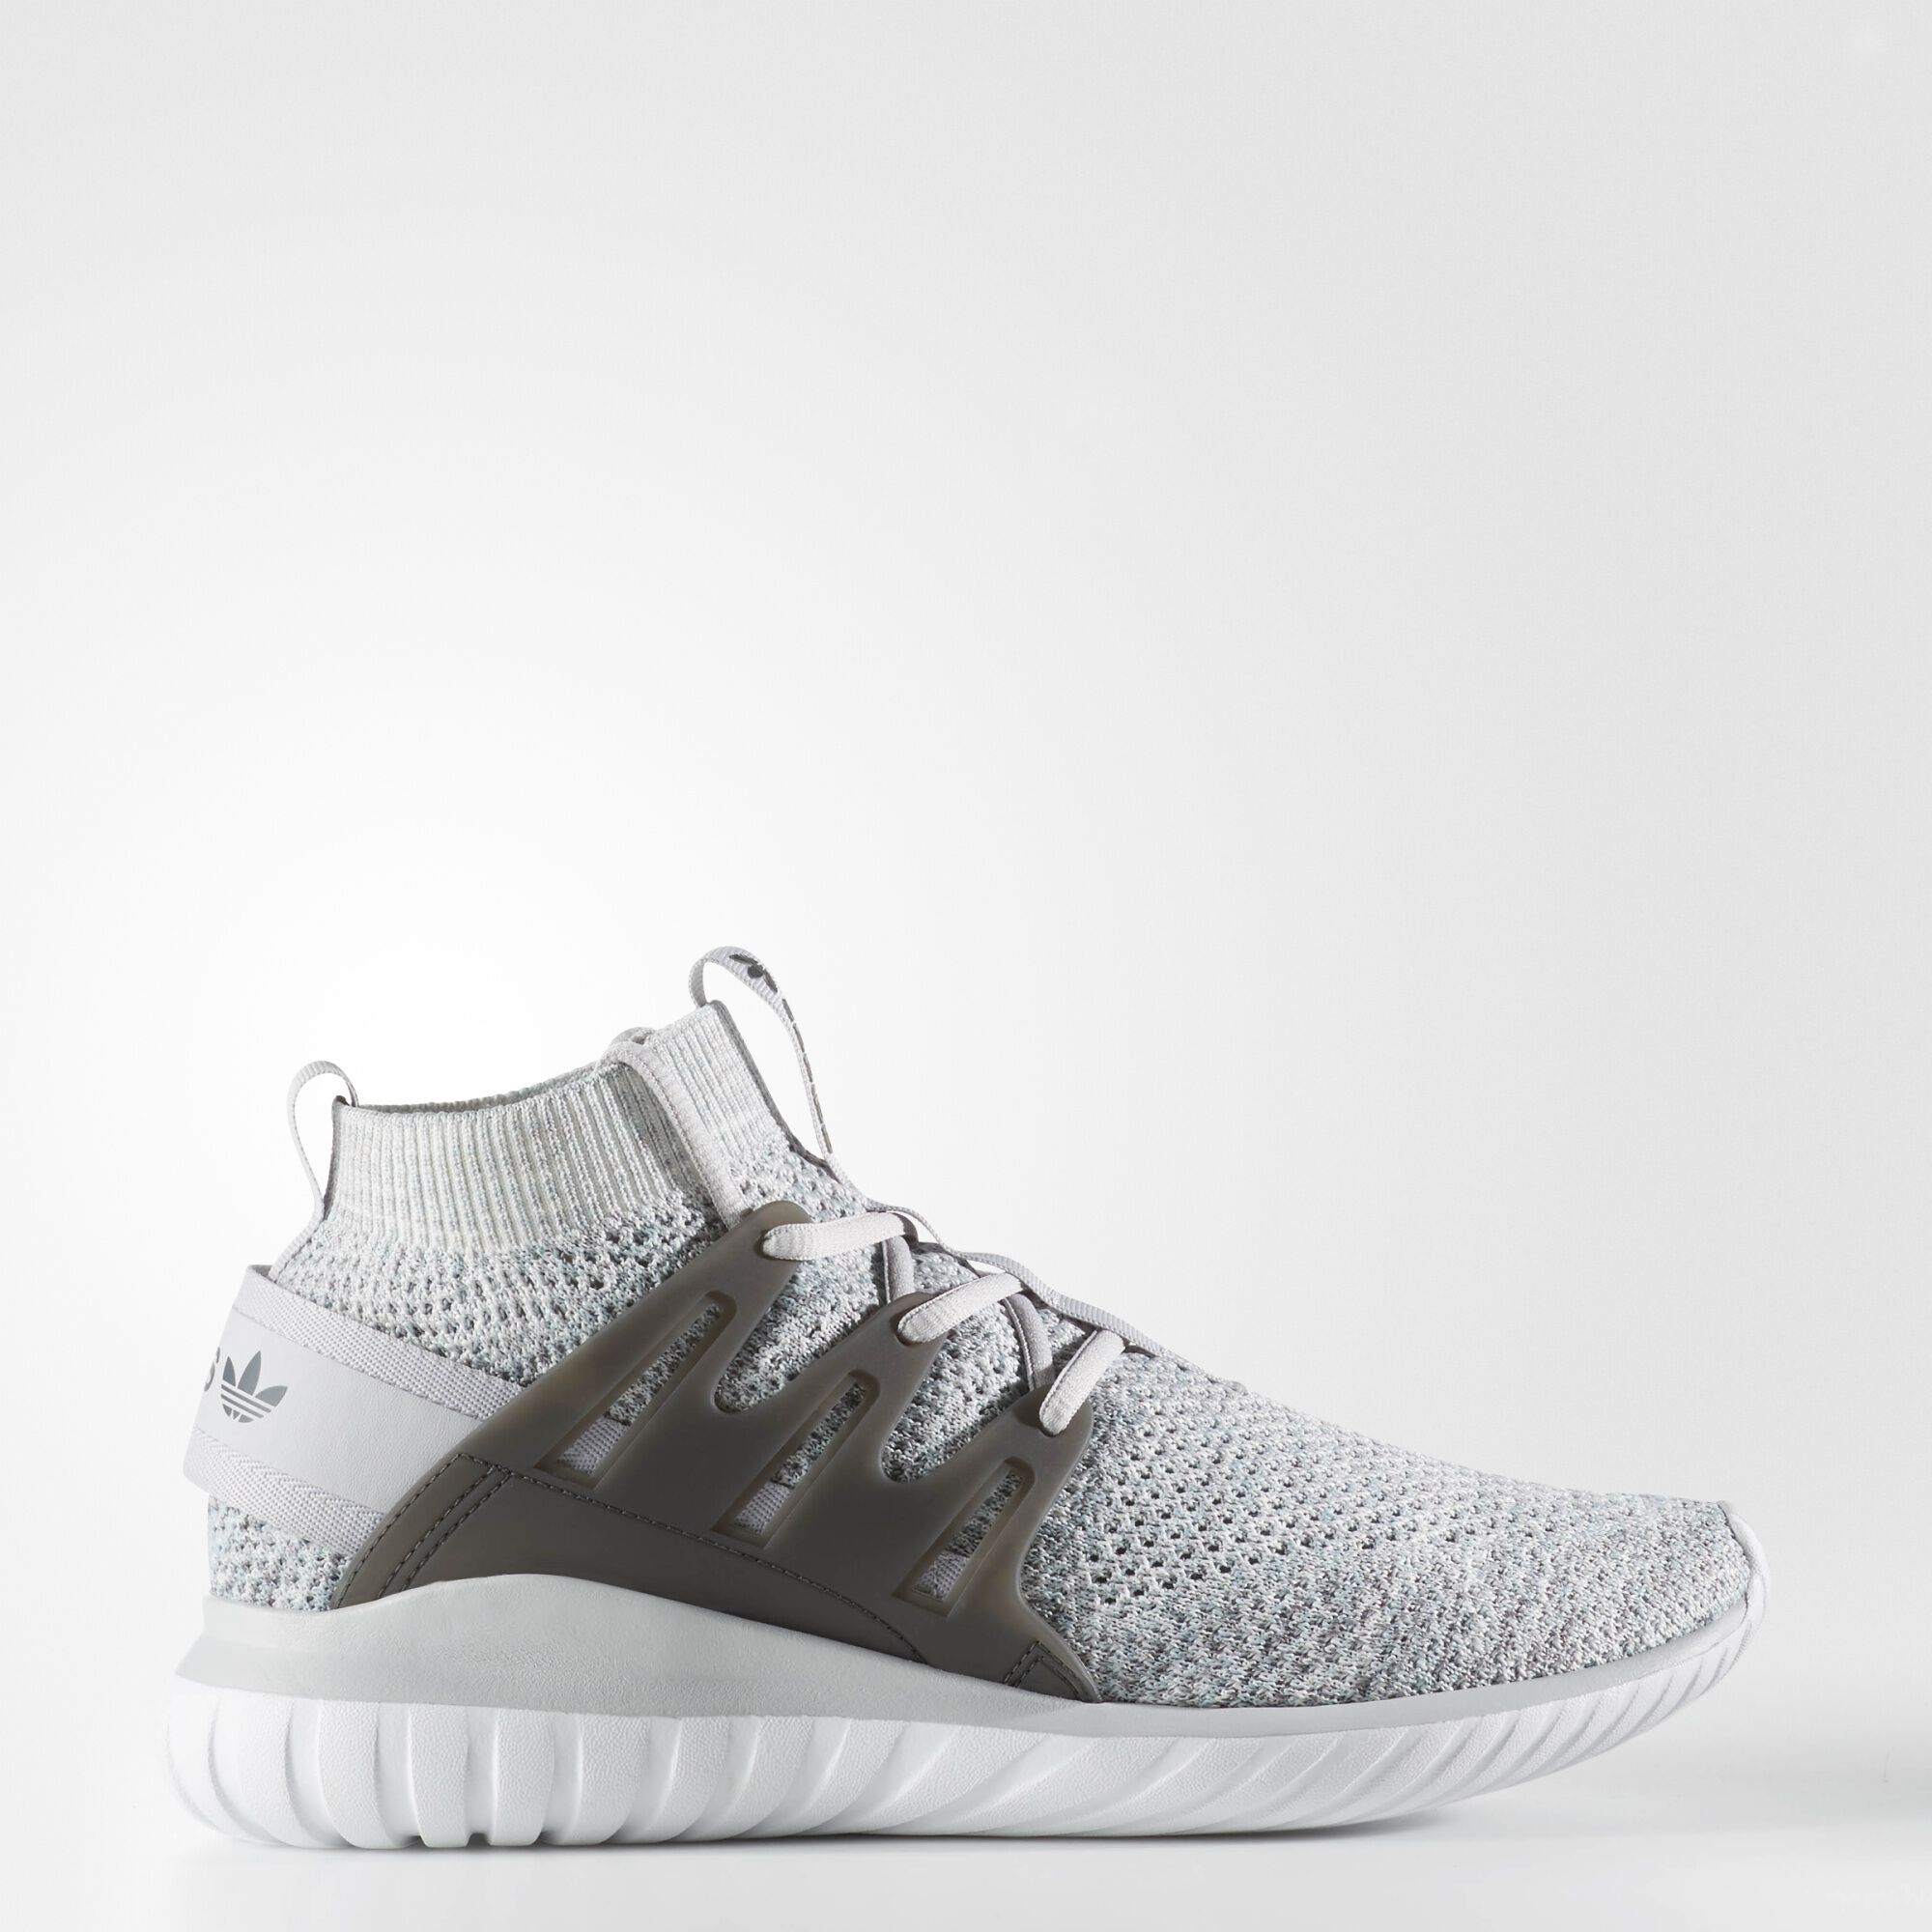 Adidas Men 's Tubular Radial Originals Running Shoe durable service